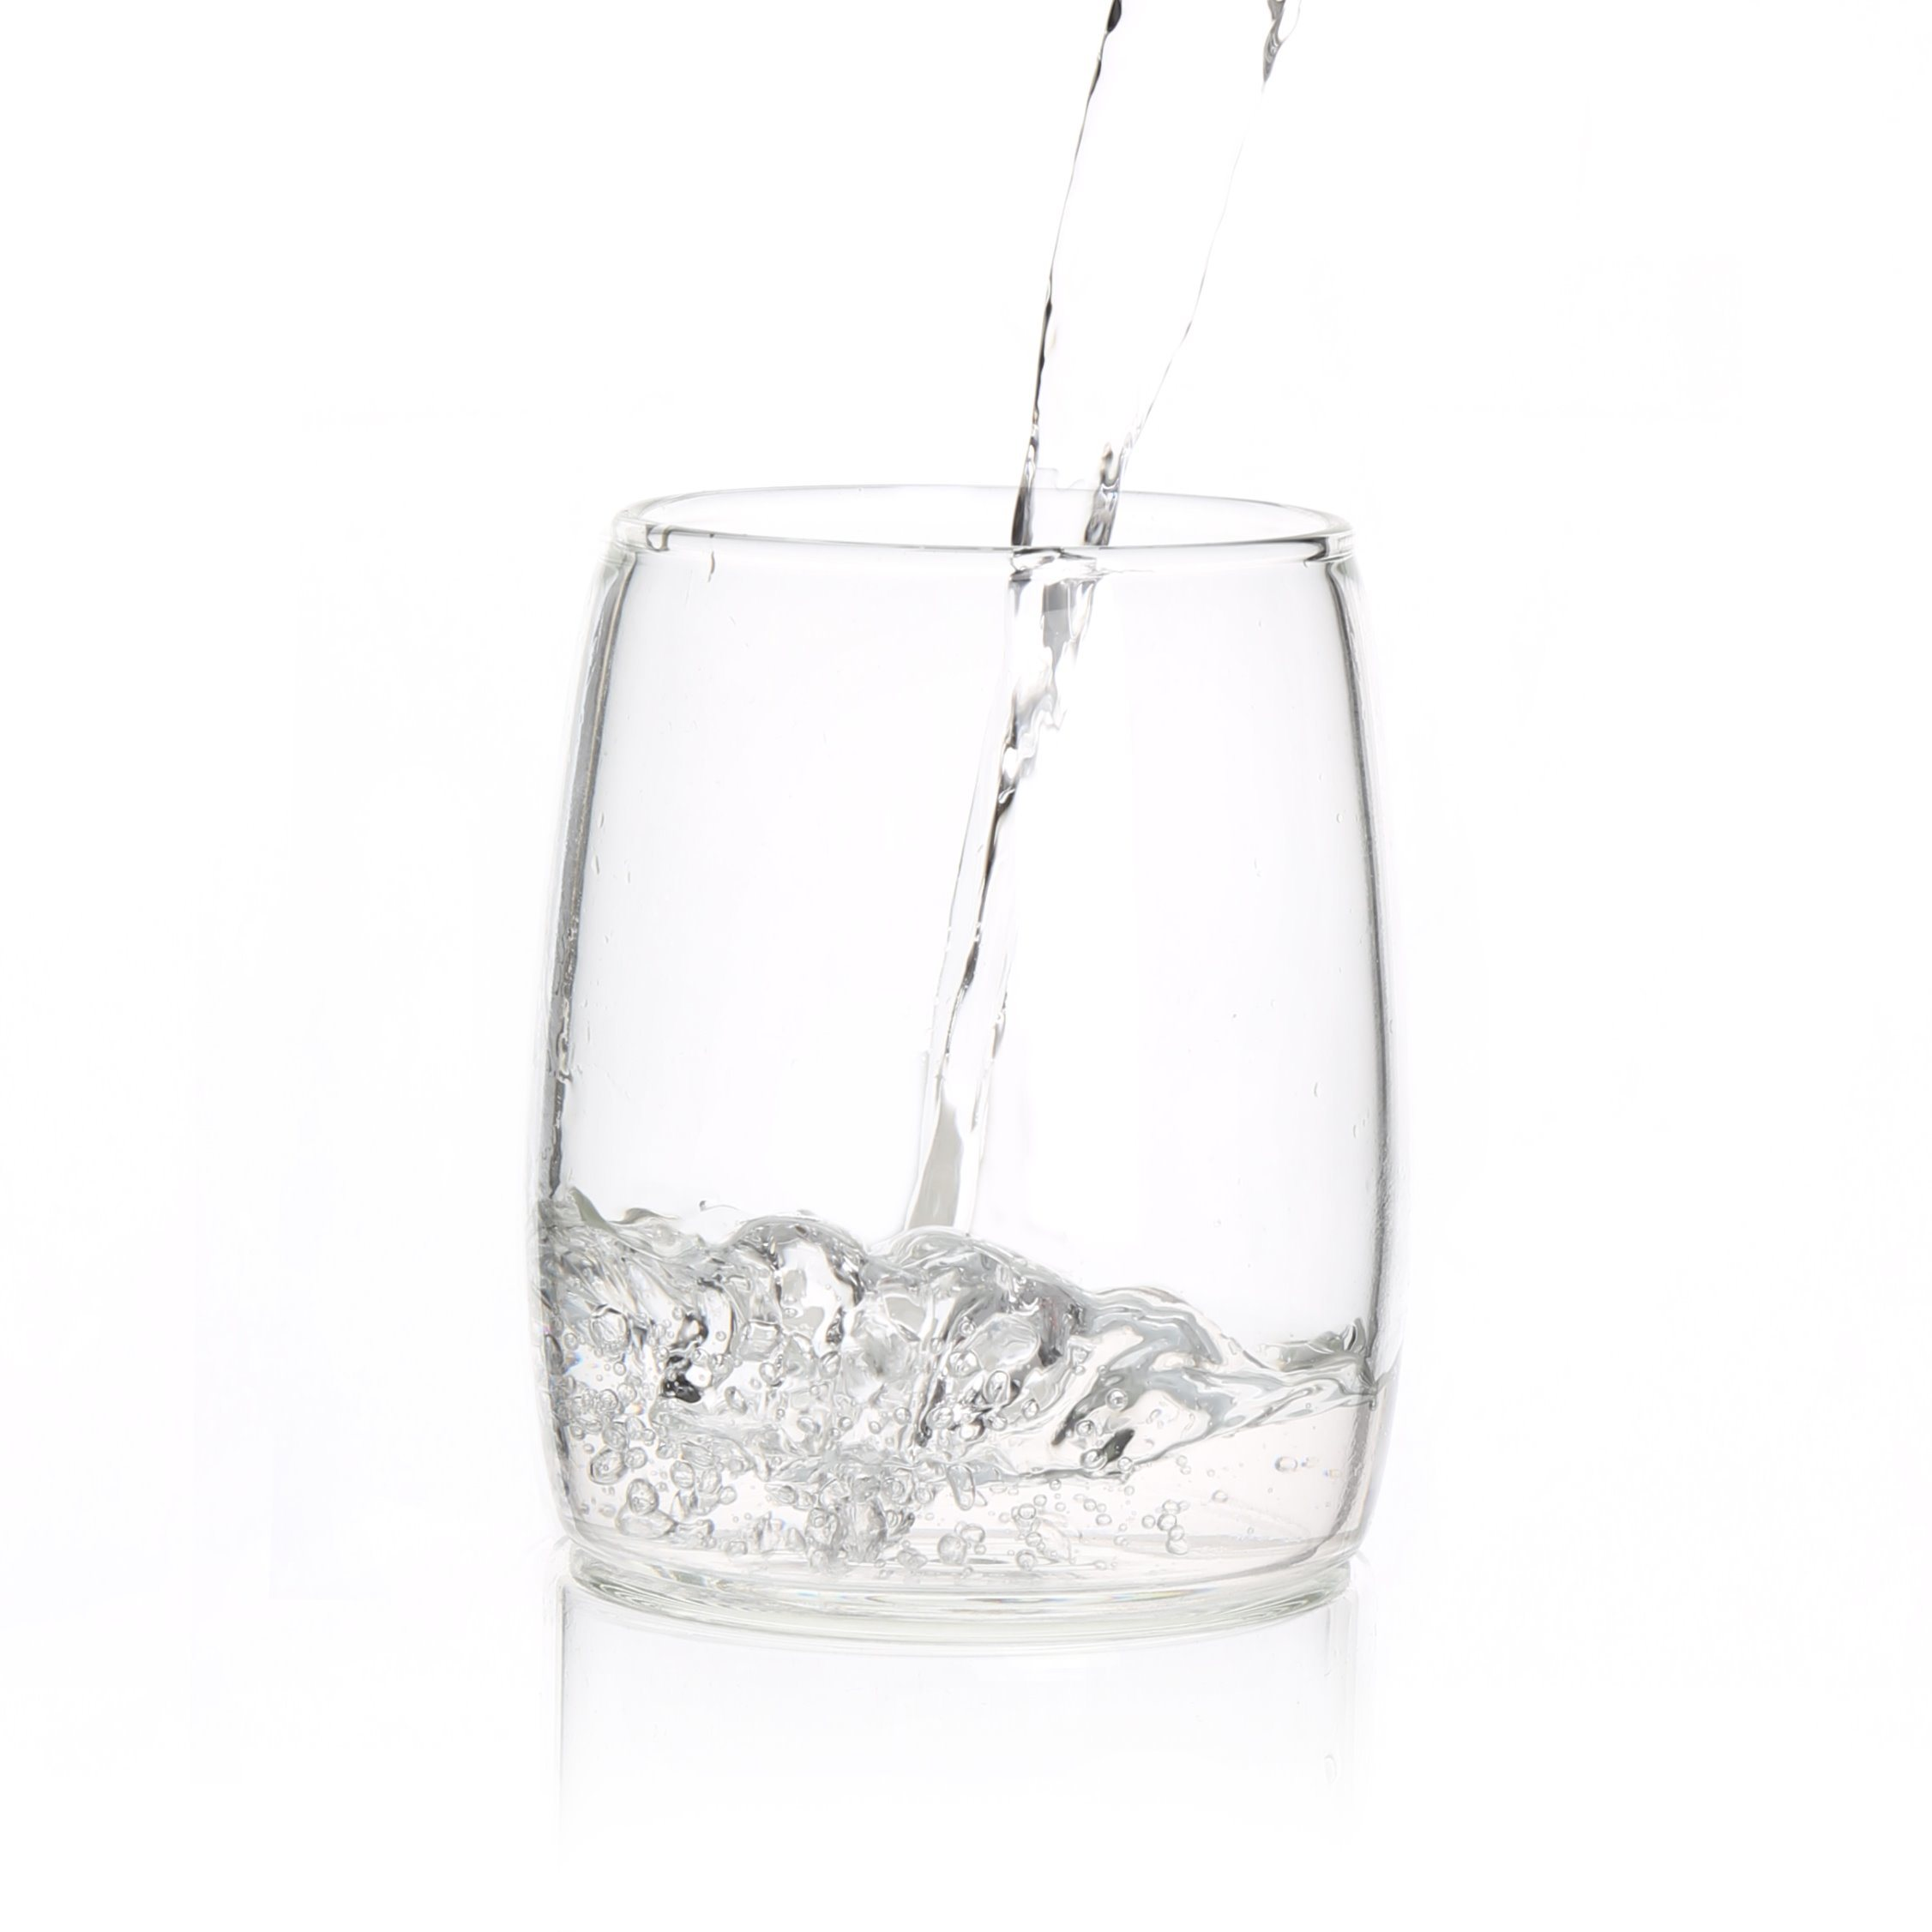 Home Used Glass Cup Clear Cup for Tea or Coffee